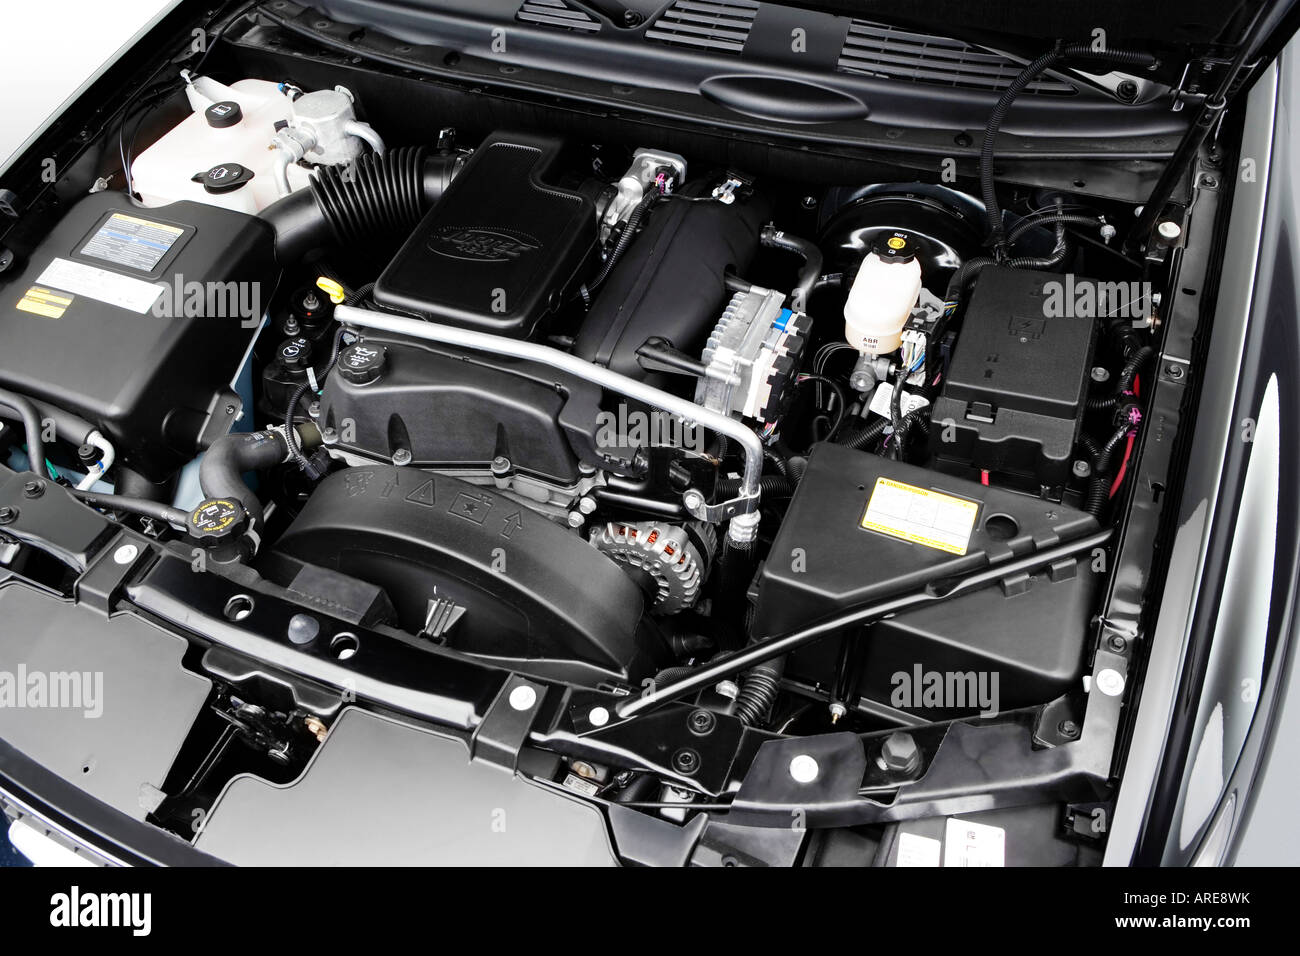 2005 saab 9 7x linear in black engine stock photo